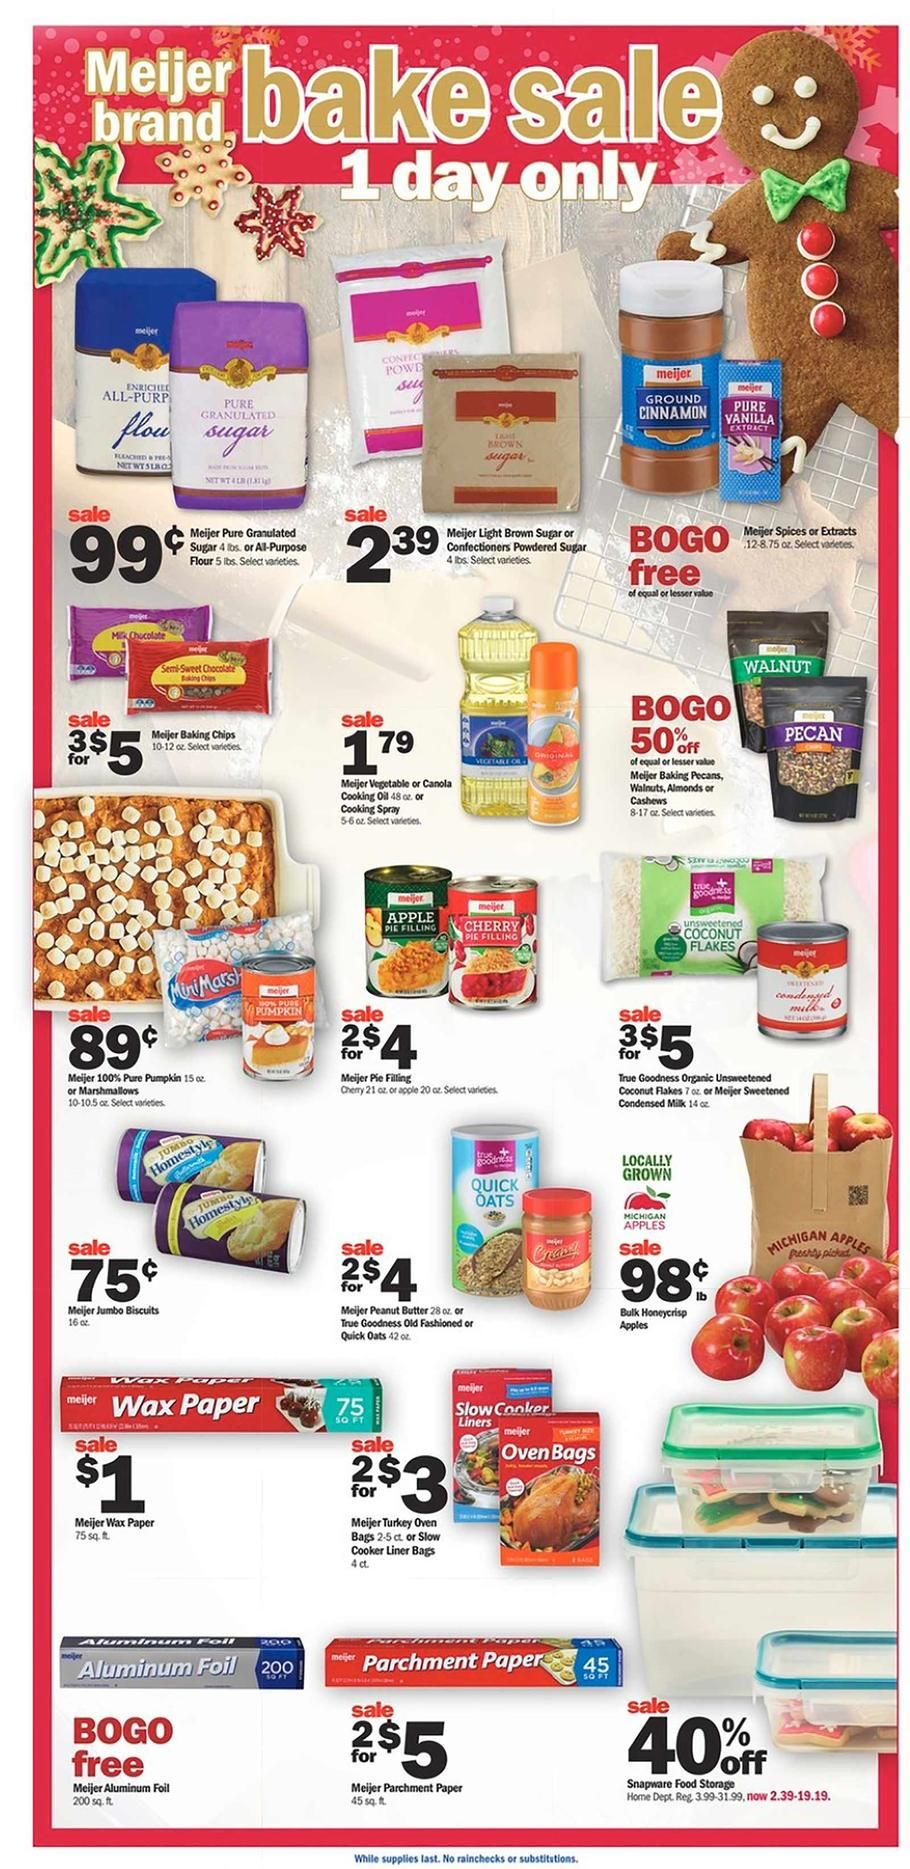 8d8baddd6b734 Meijer Black Friday 2018 Ads Scan